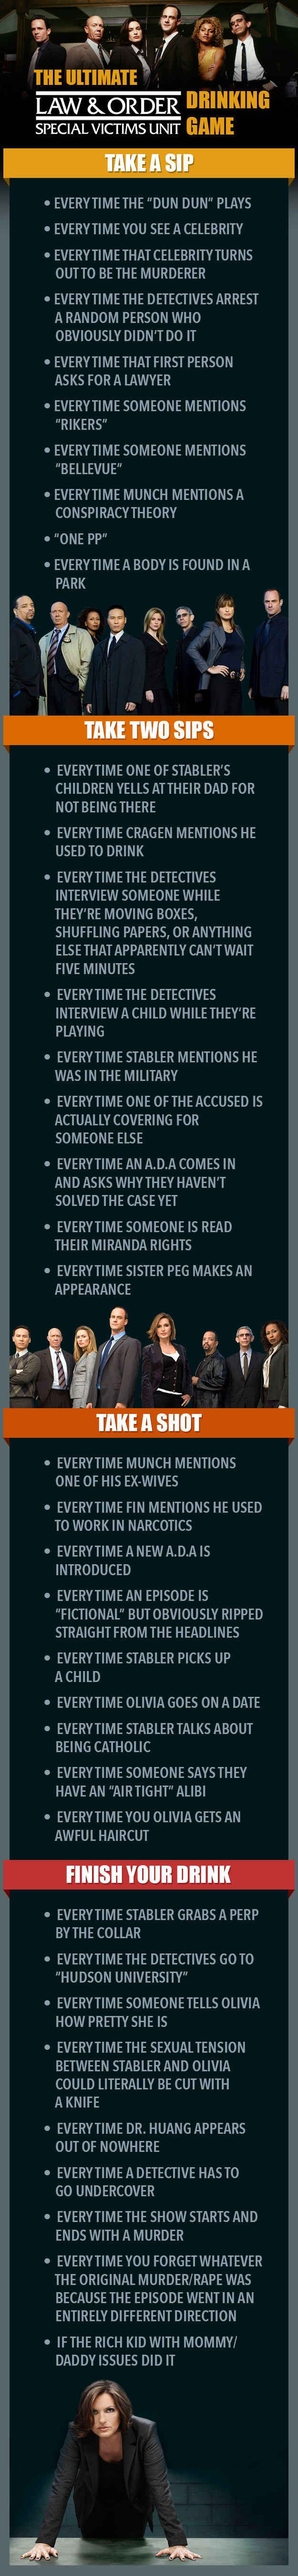 """The Ultimate """"Law & Order: SVU"""" Drinking Game Fucking flawless."""